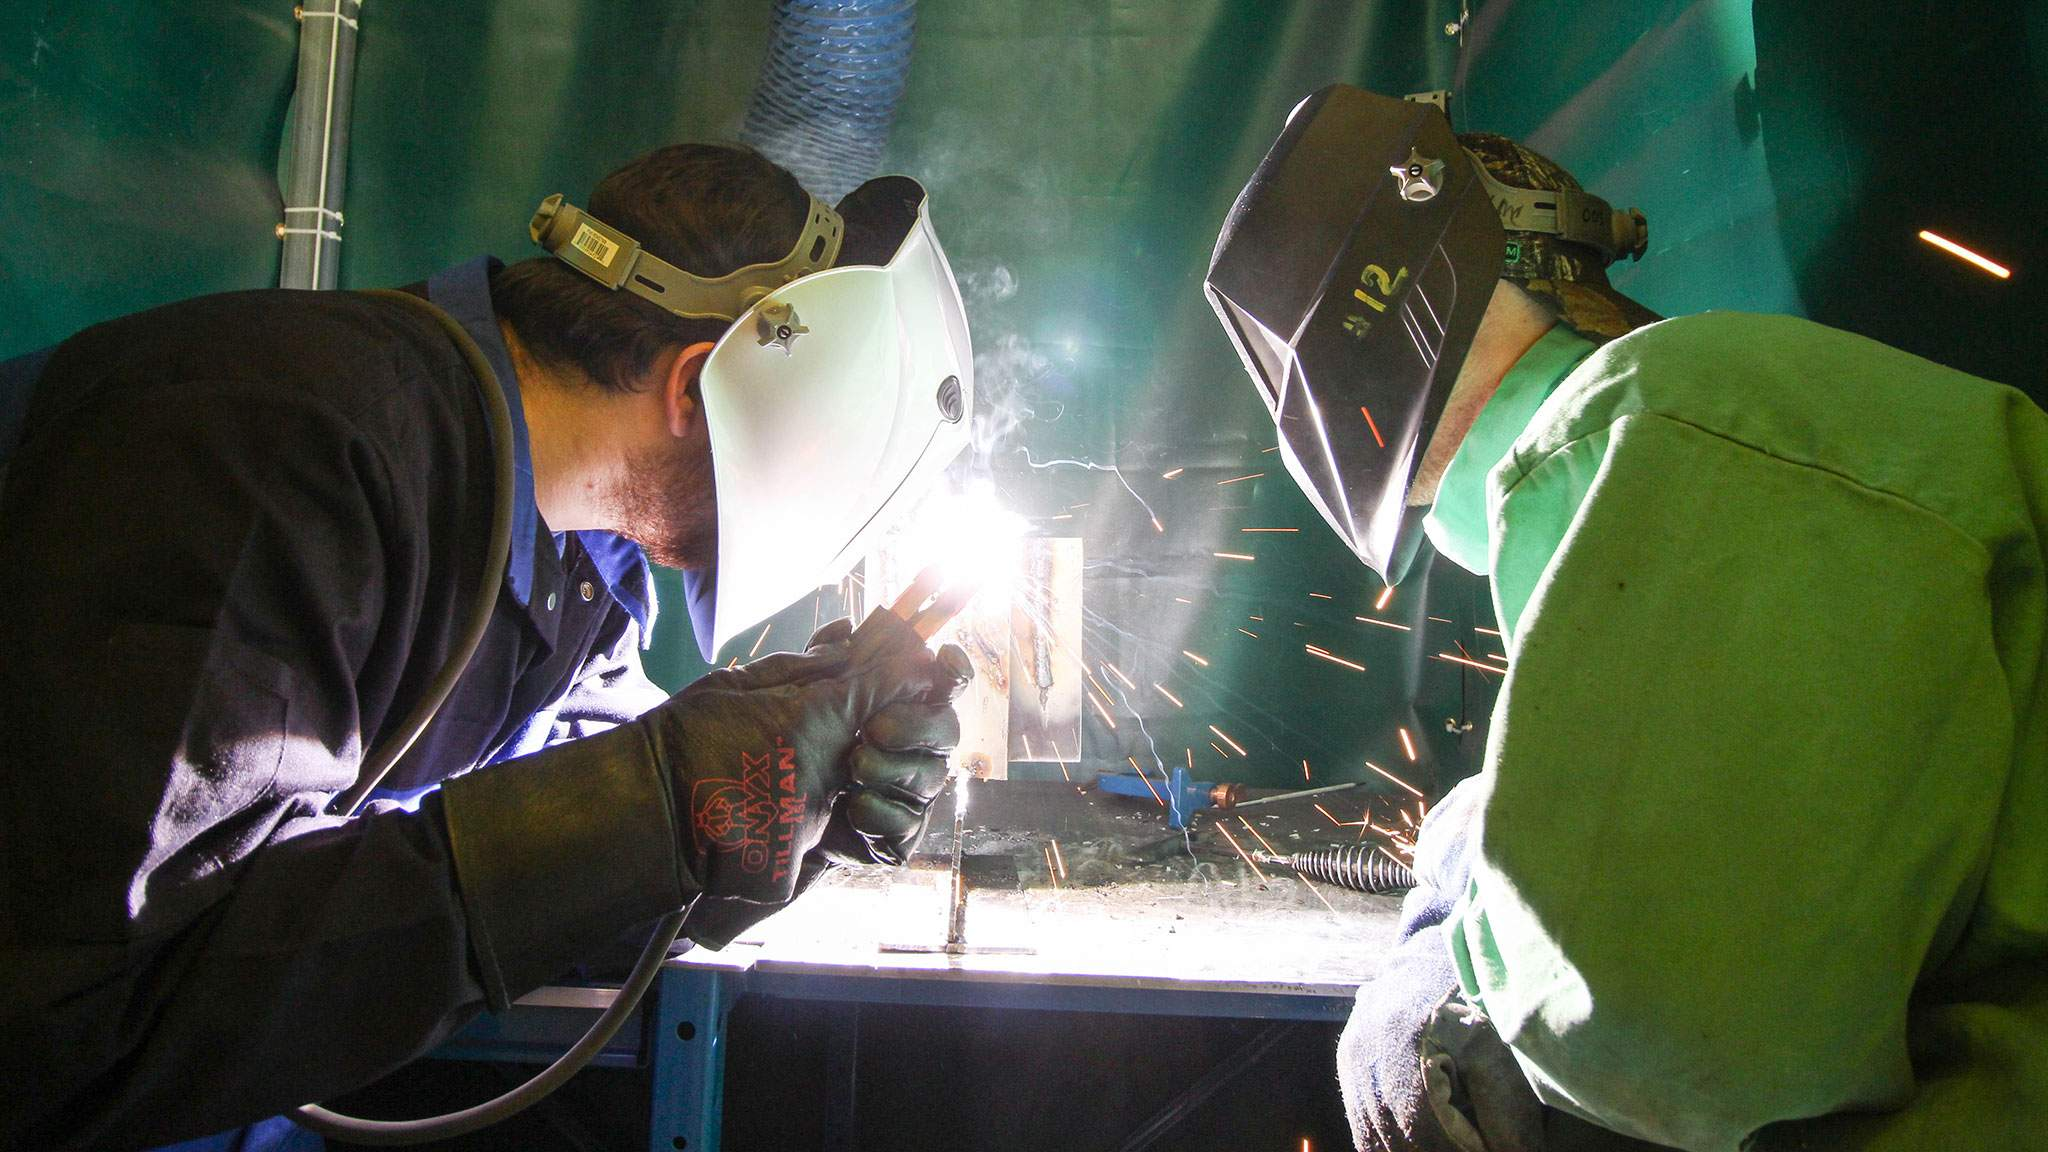 Welding at the Hanson Technology Center